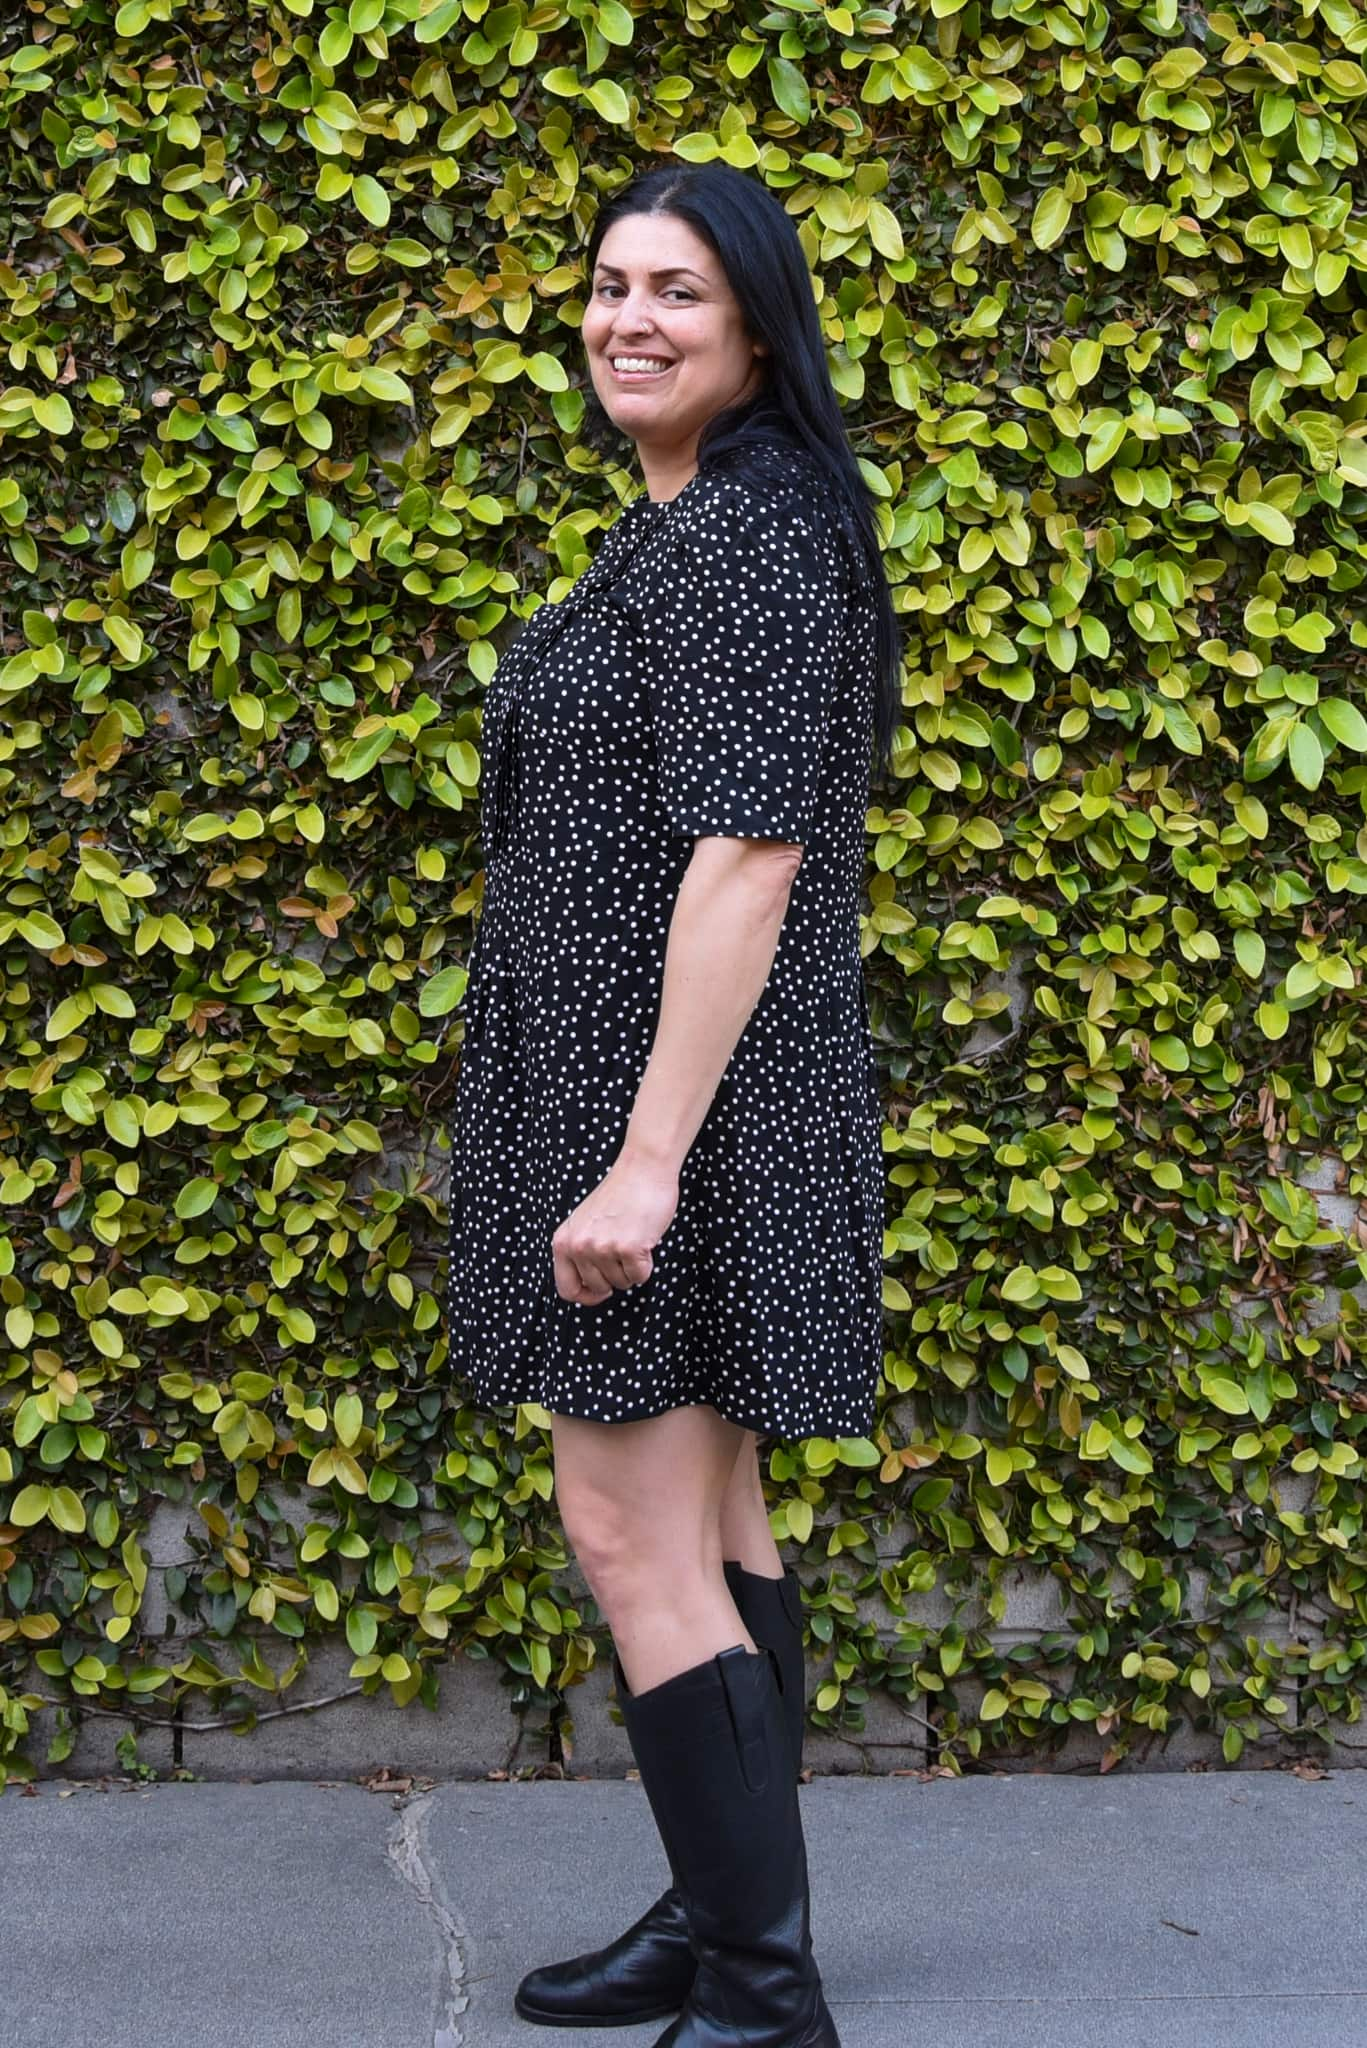 Image of woman standing sideways wearing a black and white polka dot Simplicity 8551 dress